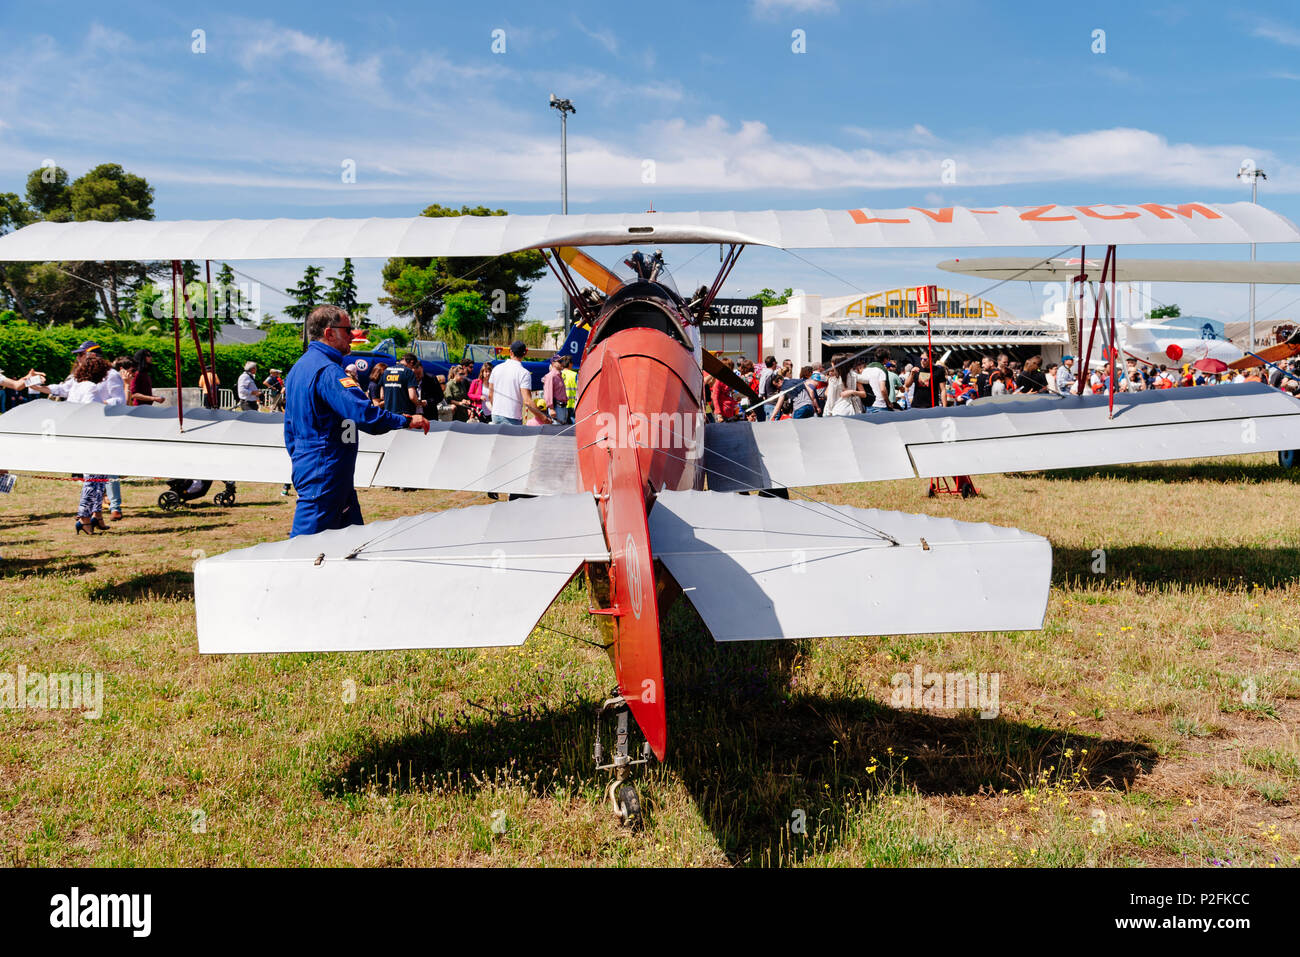 Madrid, Spain - June 3, 2018:  Consolidated Fleet 10 from 1930 during air show of historic aircraft collection in Cuatro Vientos airport - Stock Image